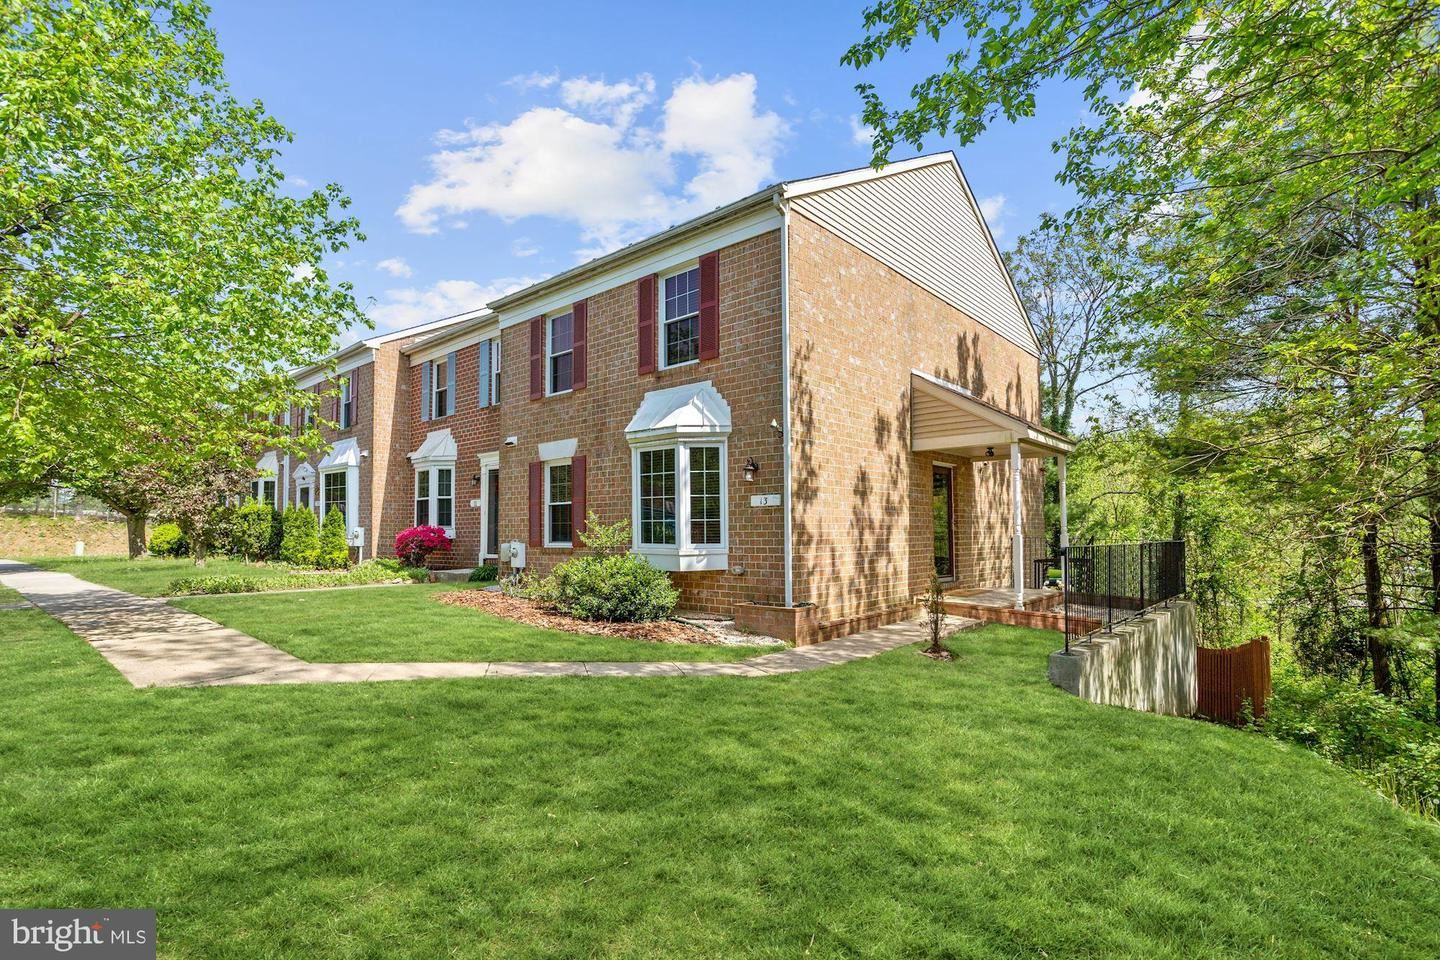 13 COURTWOOD DR, Pikesville, MD 21208 - MLS#: MDBC527454